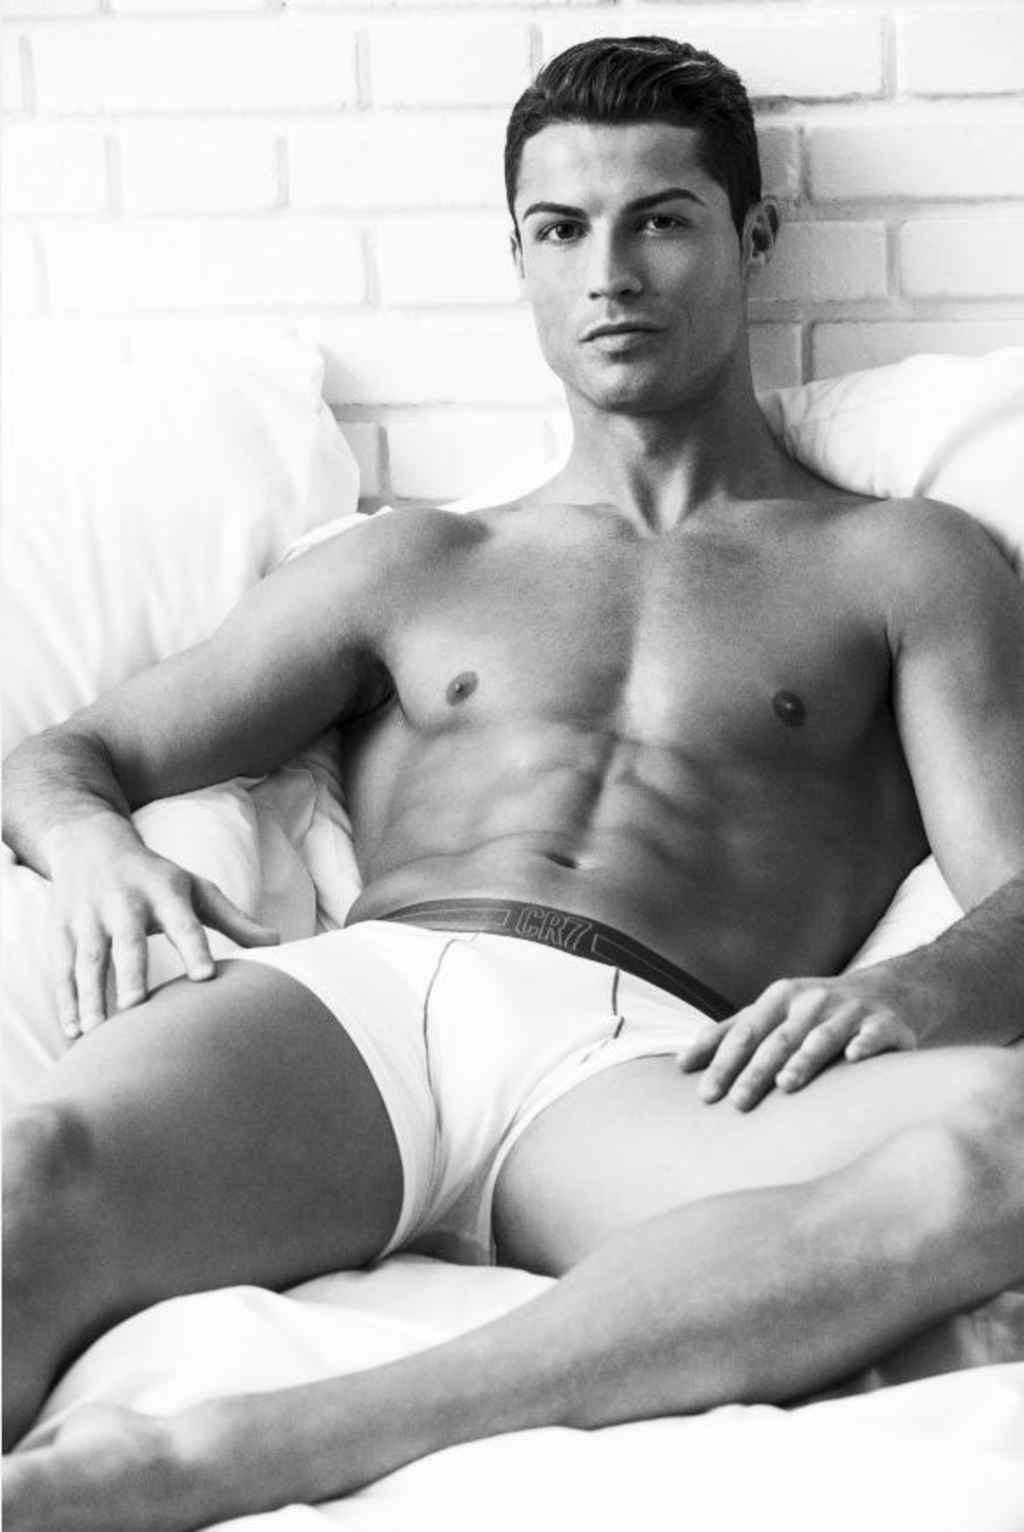 Christiano Ronaldo modeling his own underwear line, CR7.